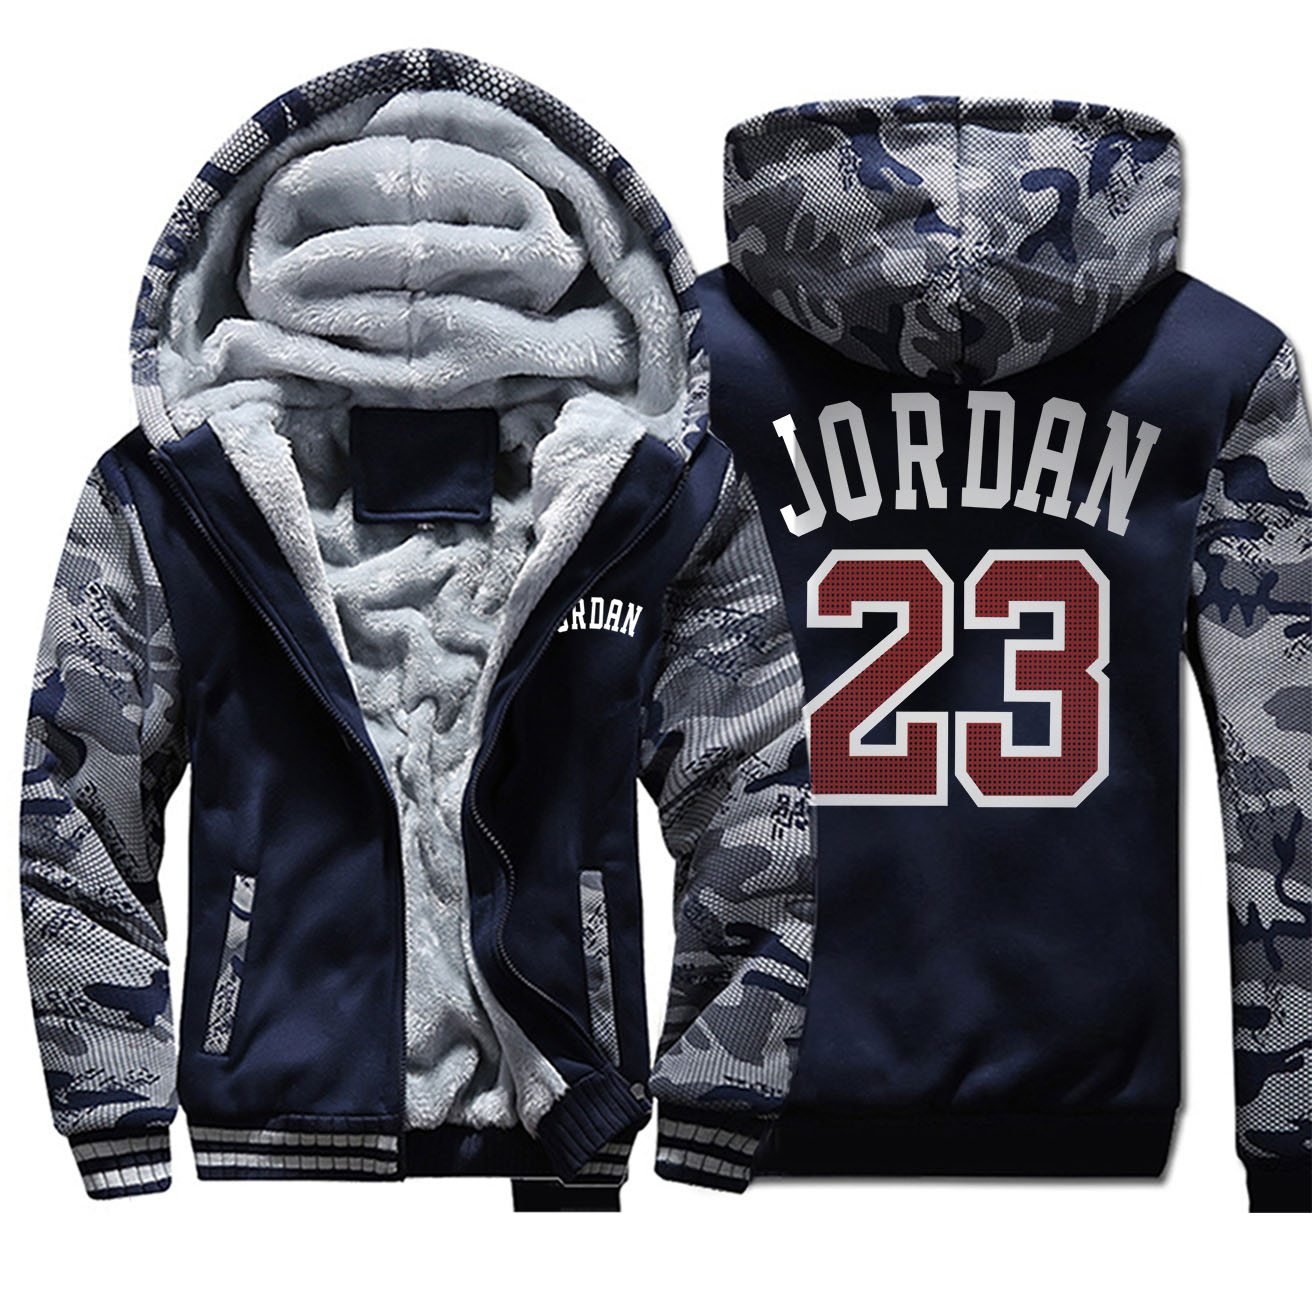 Jordan 23 Jackets Hoodies Sweatshirt Men Basketball Sports Zipper New Winter Thick Fleece Coats Sportswear Camouflage Streetwear